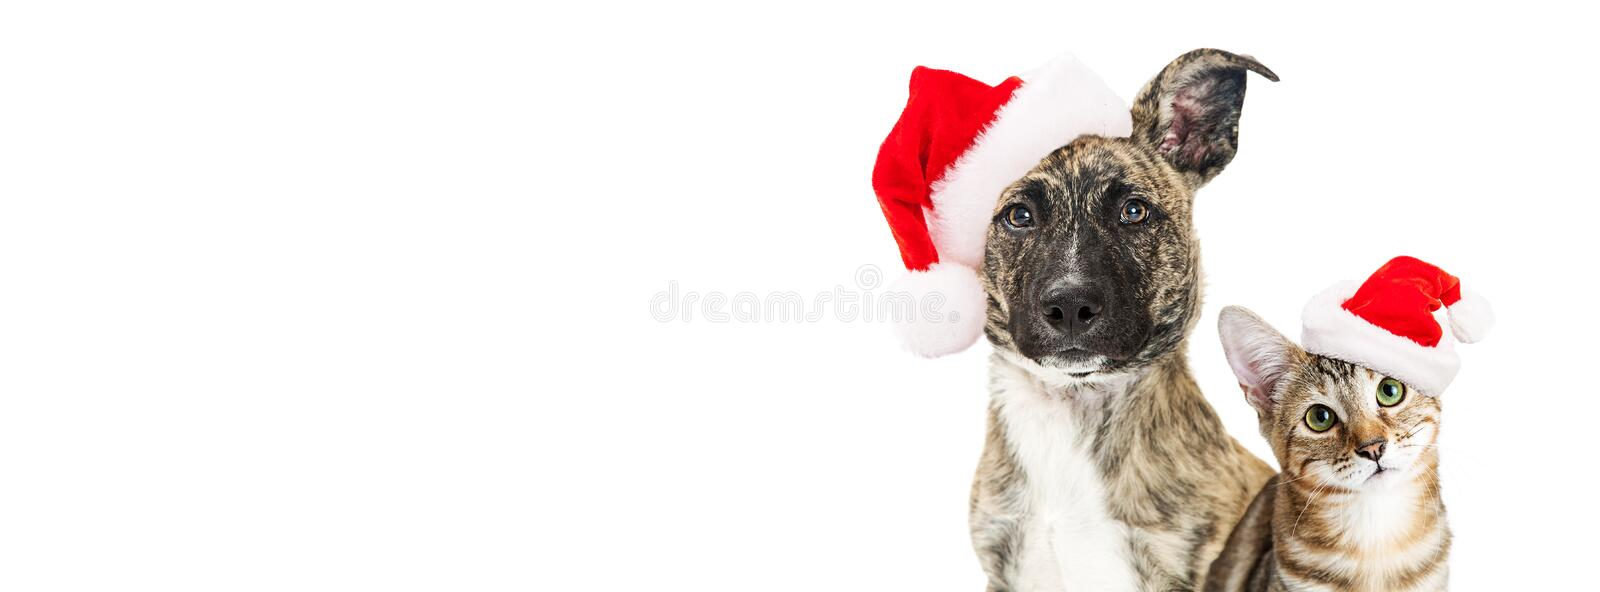 Christmas dog and cat website banner royalty free stock photography